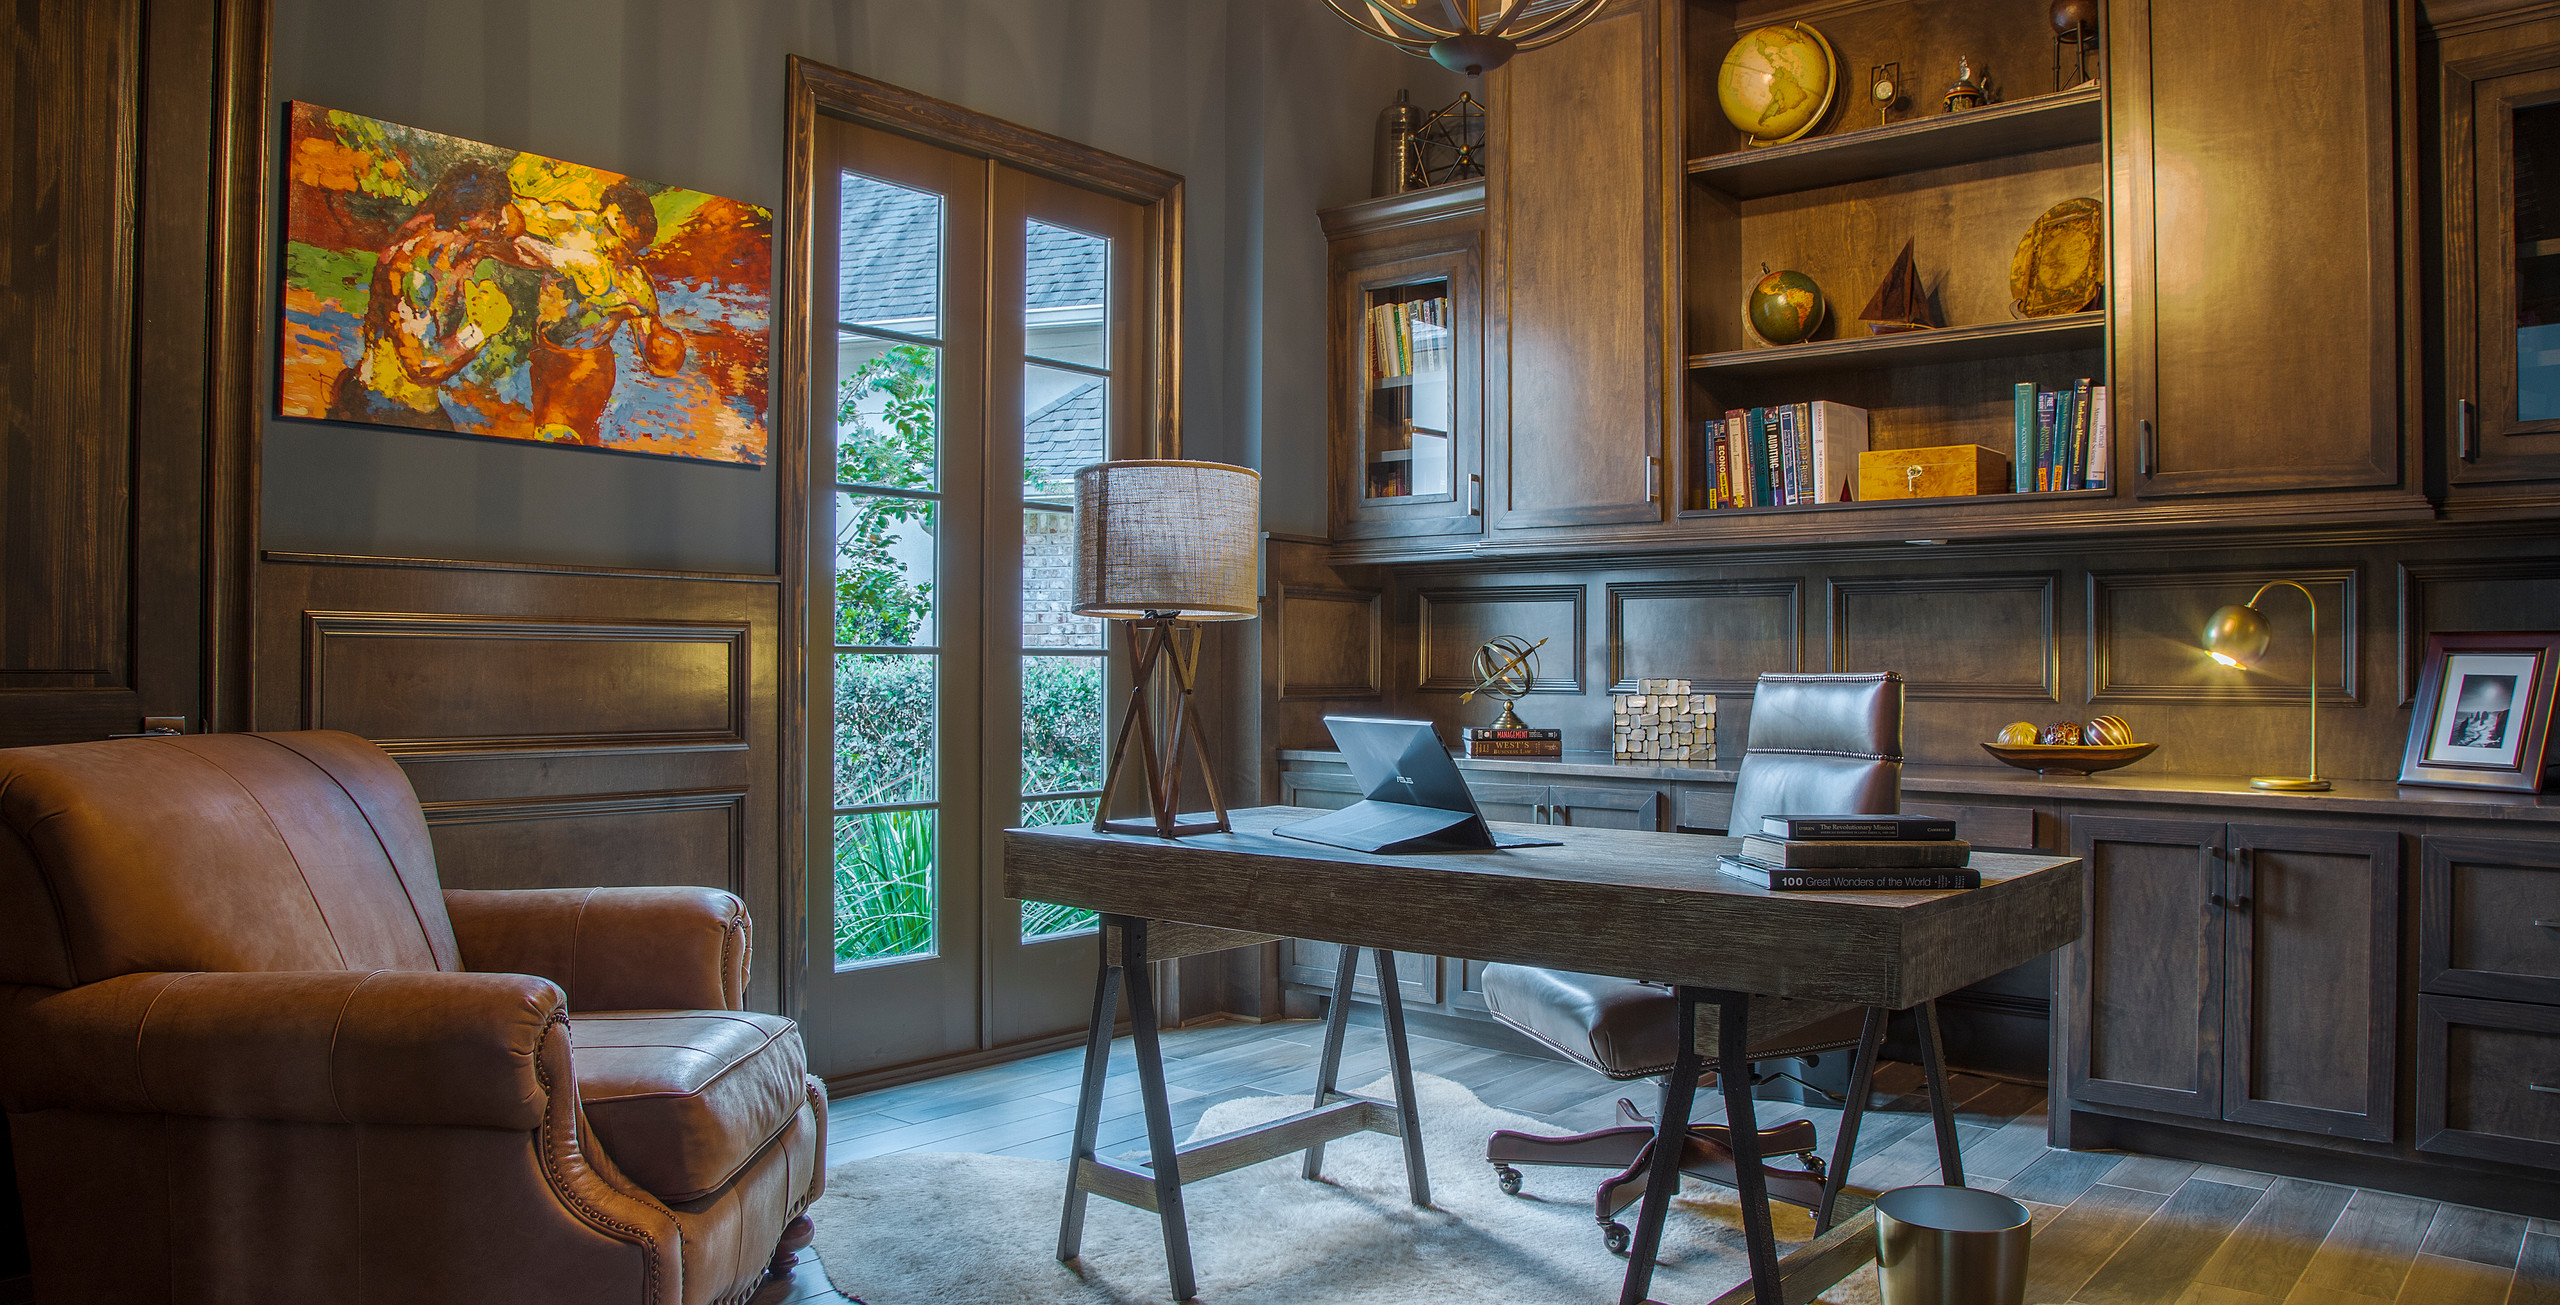 modern, transitional office. interior designer in the woodlands, tx. Spring and Houston, TX. Masculine office with wood tones and leather chair. interior designer in houston